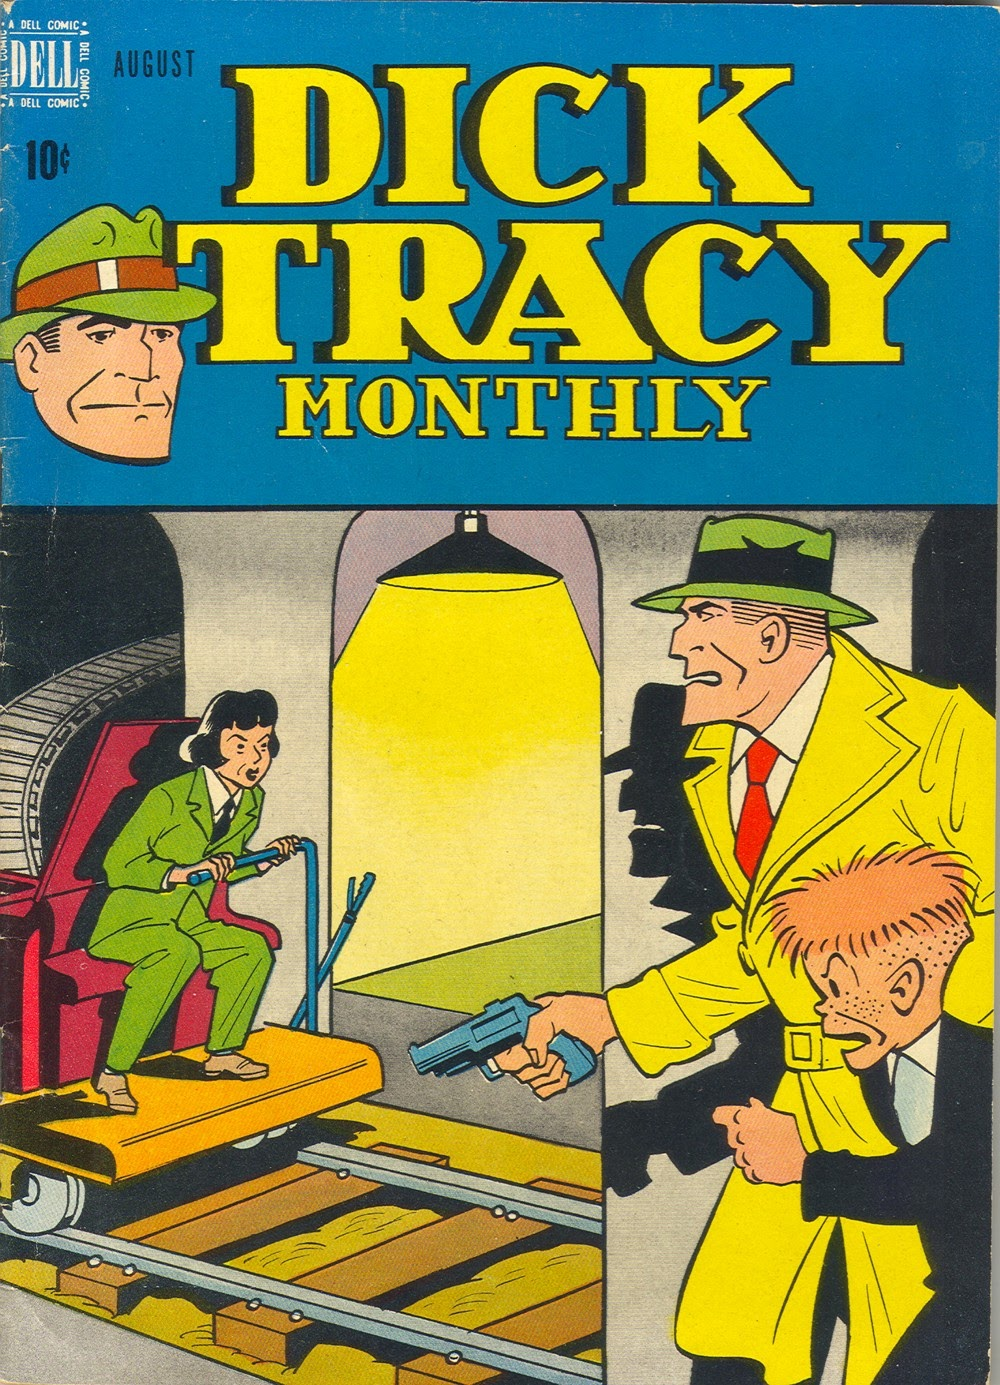 Dick Tracy Monthly 8 Page 1